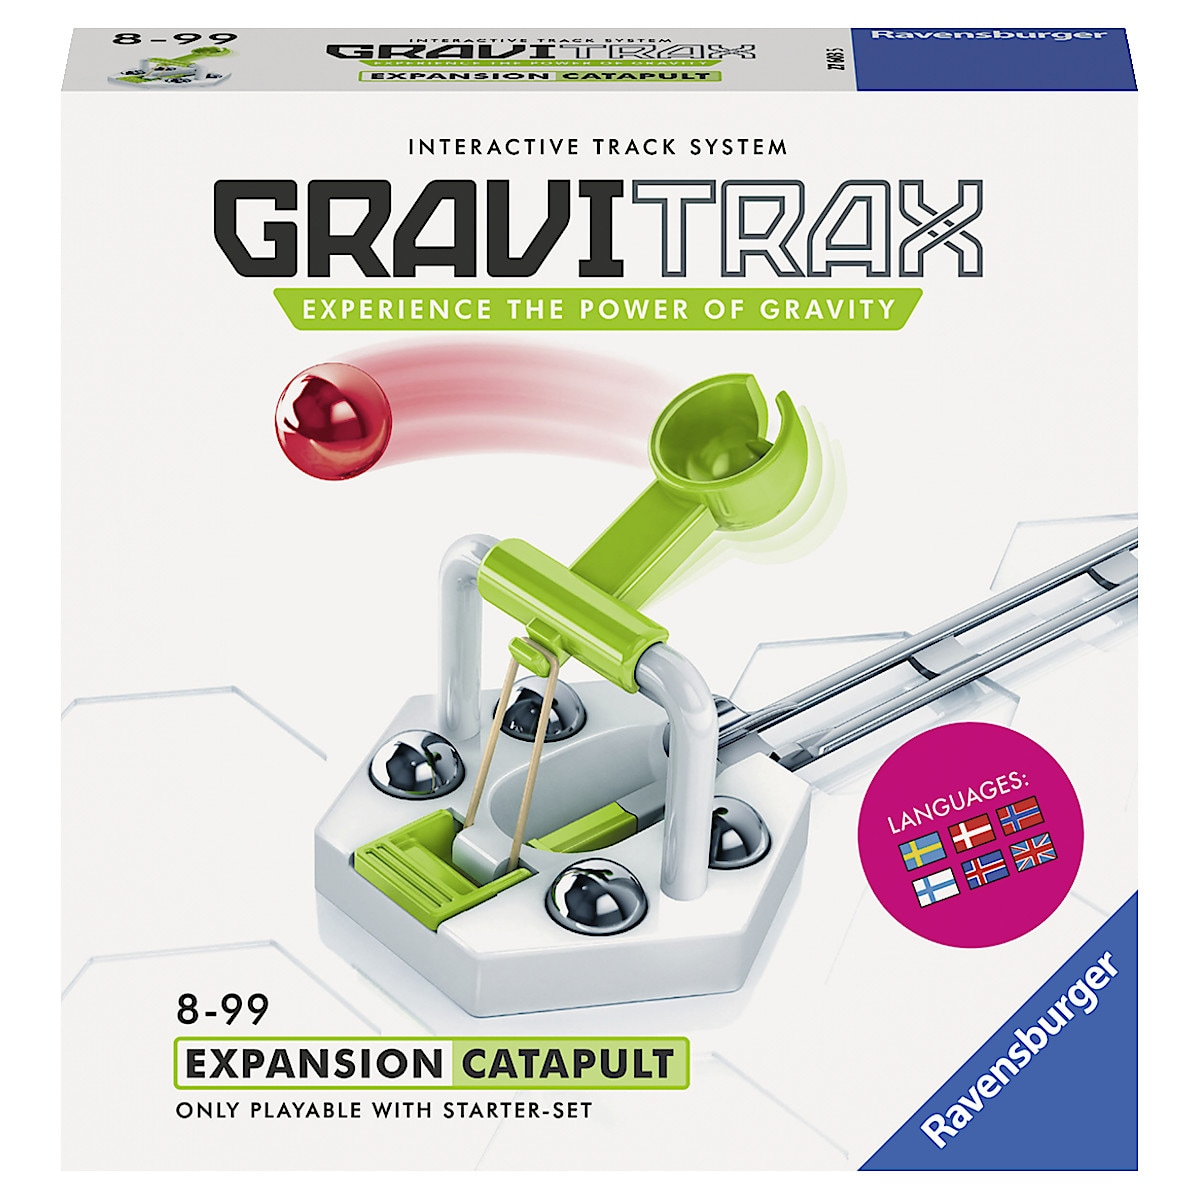 GraviTrax Expansion Catapult, Ravensburger